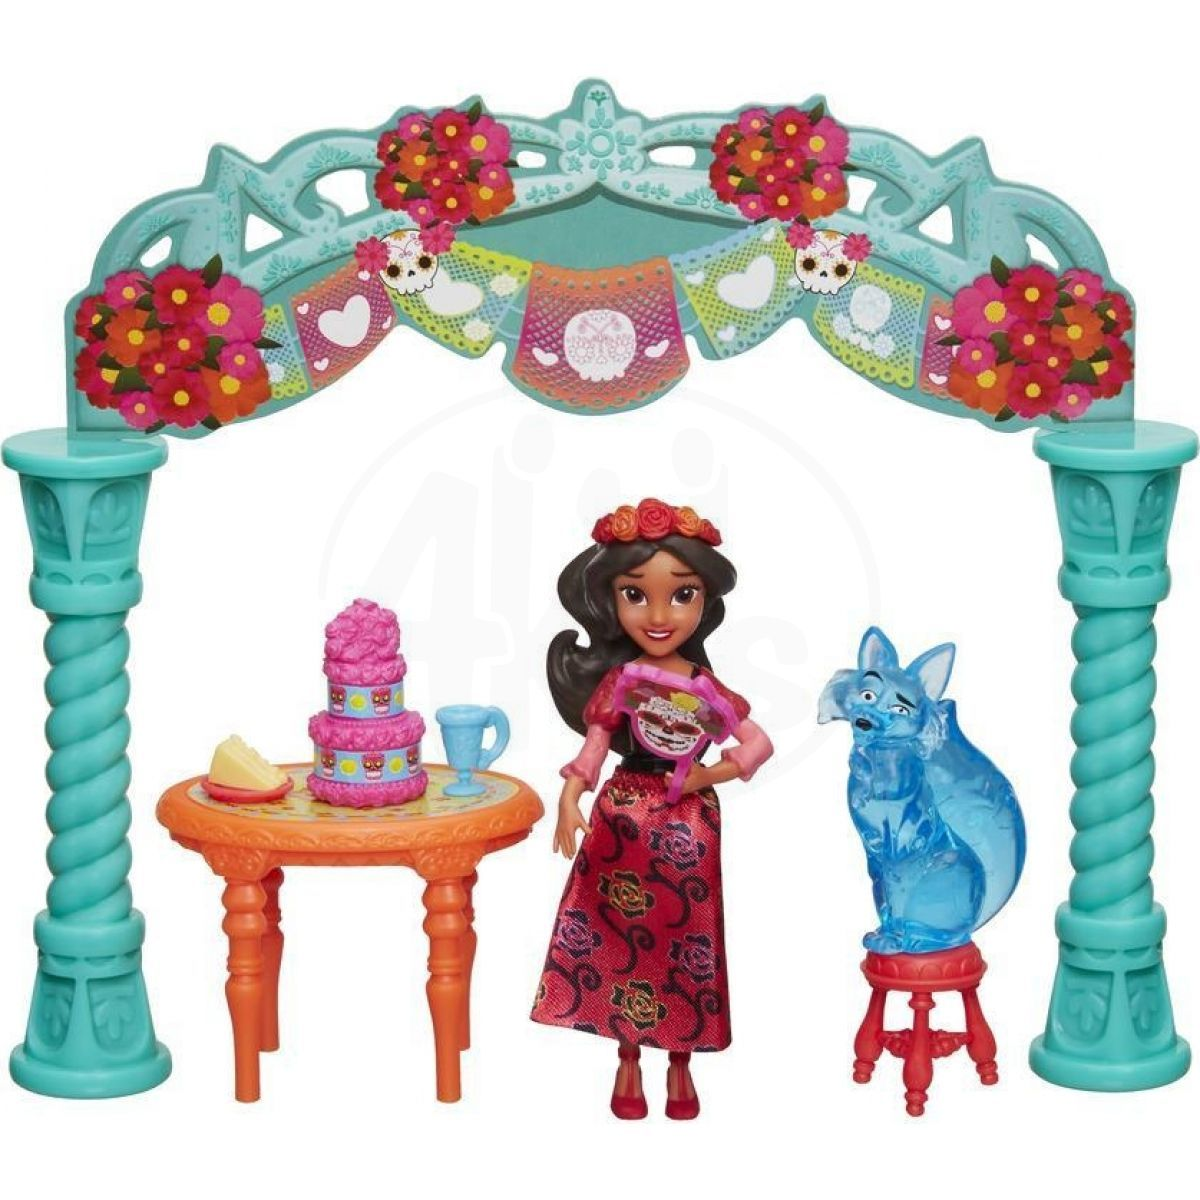 Hasbro Disney Princess Mini panenka Elena z Avaloru set Oslava